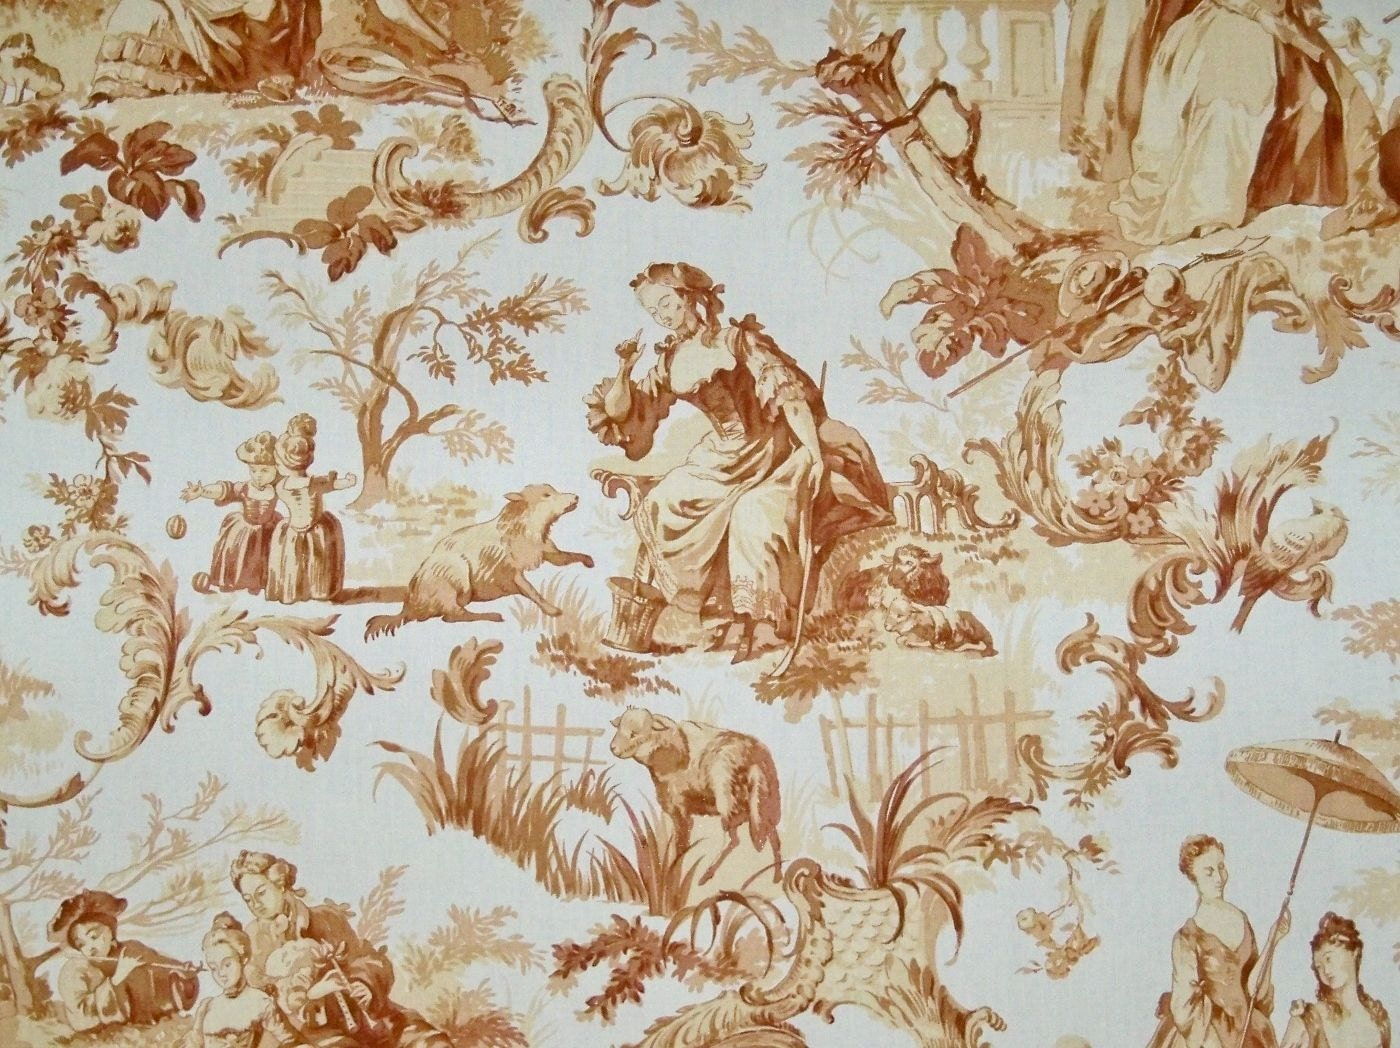 Travers bergere shabby romantic fragonard french toile fabric for French toile fabric